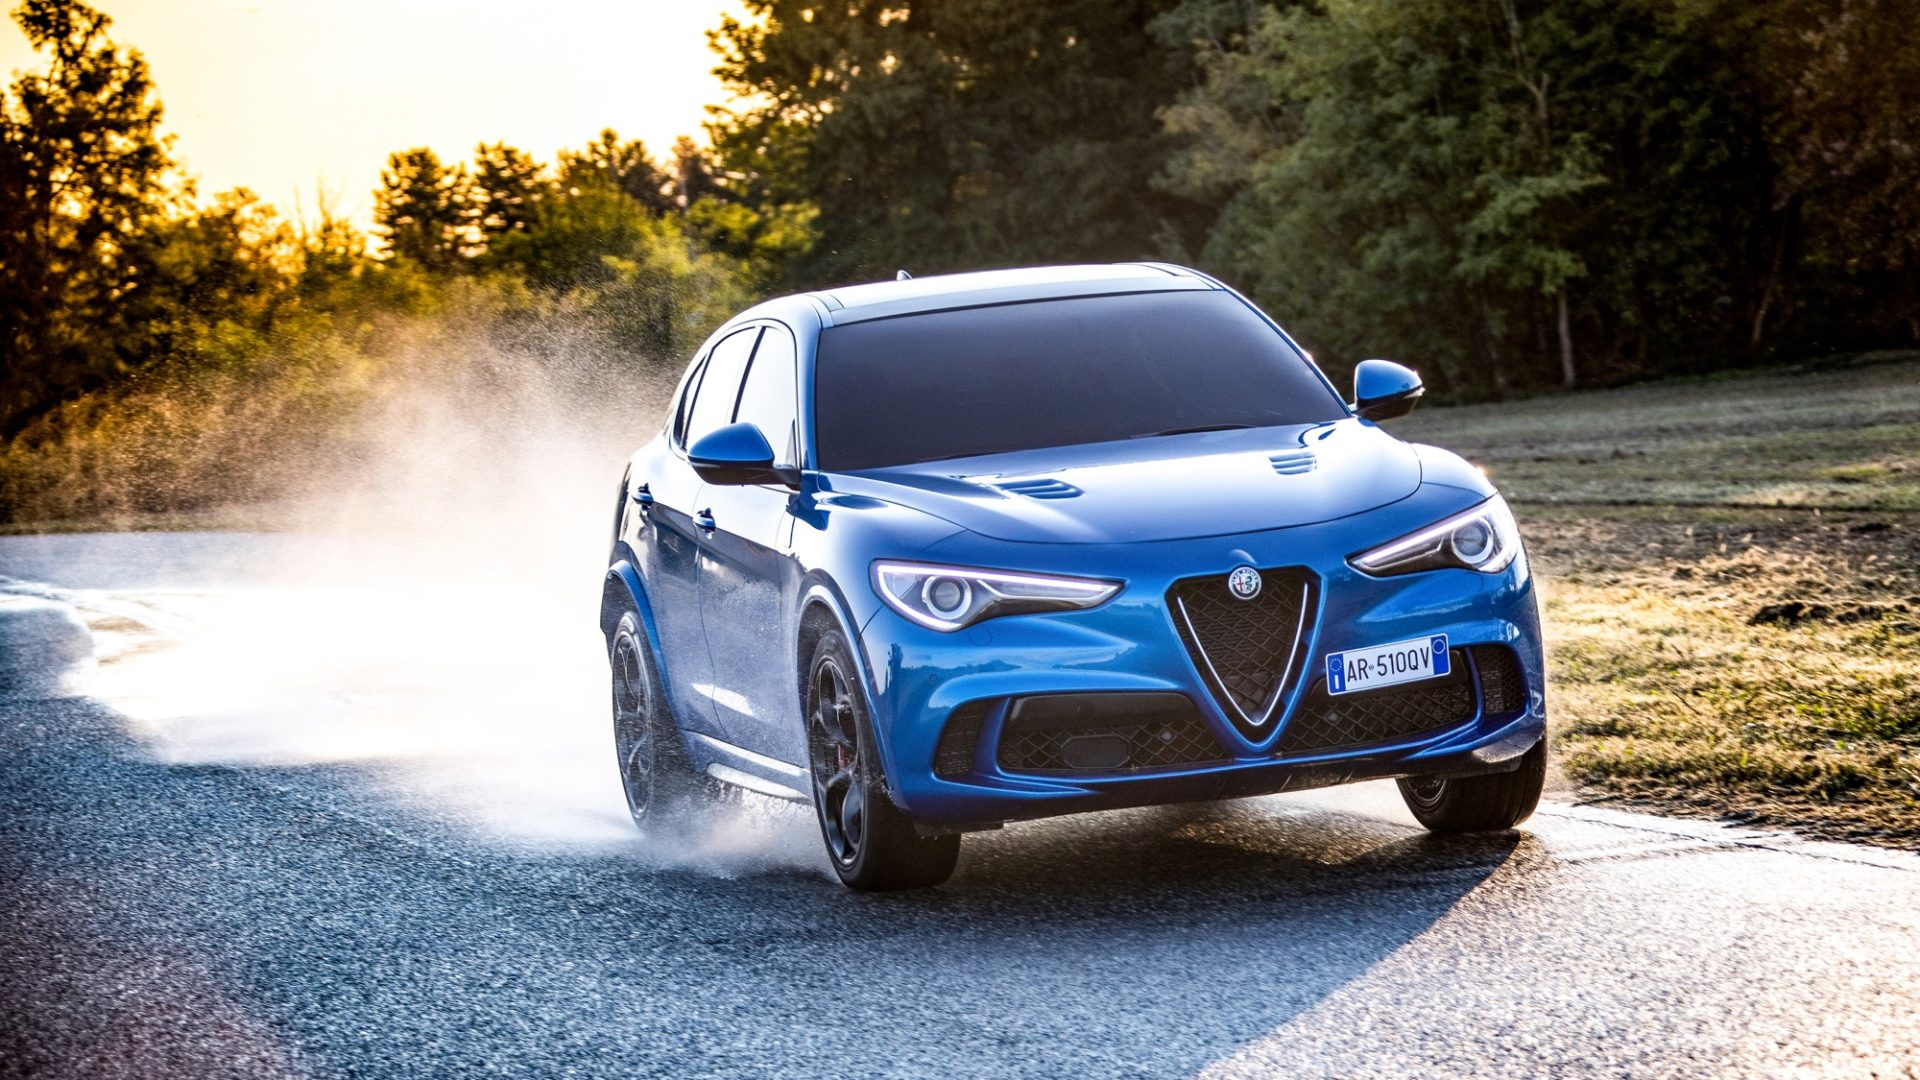 FCA Balocco Proving Ground, dove si forgiano Alfa Romeo, Jeep e Fiat 3